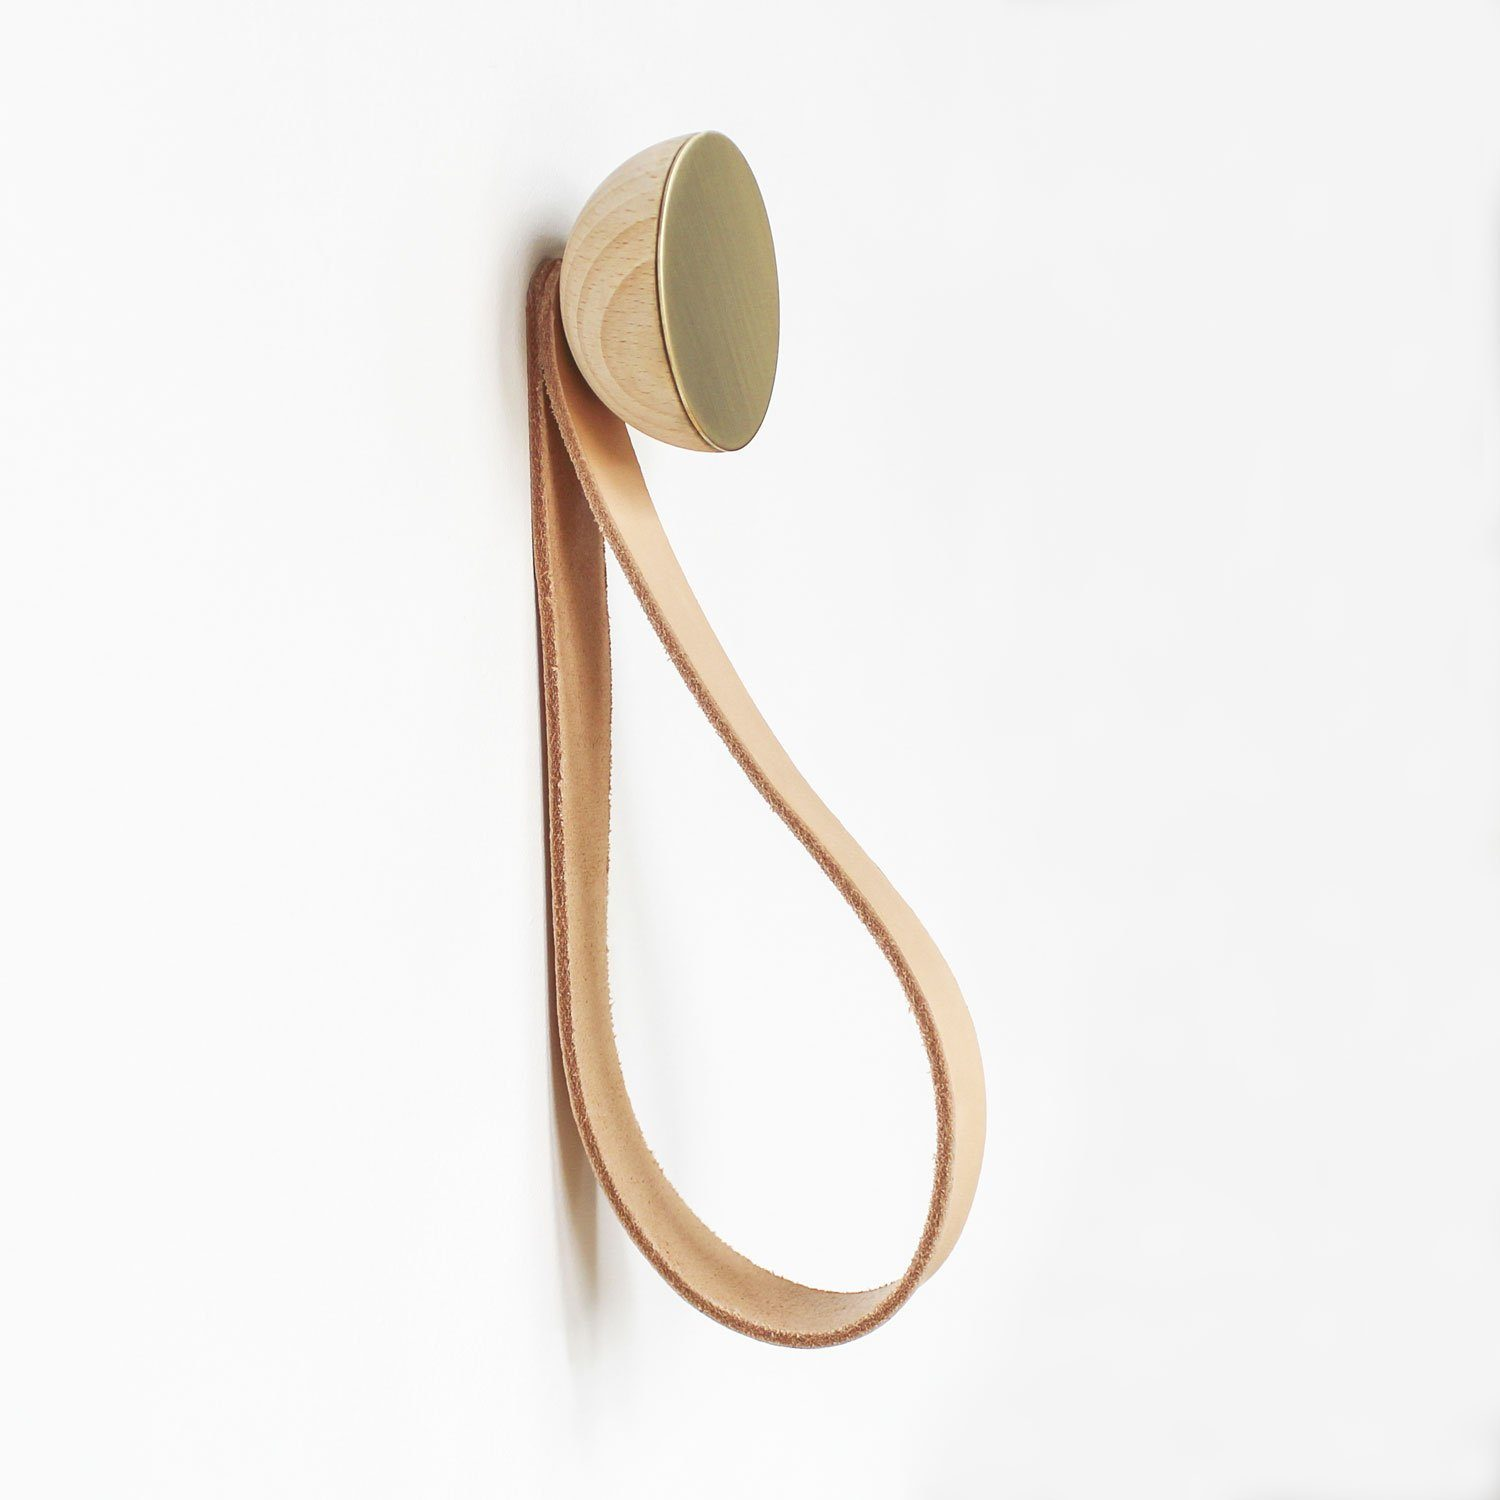 Round Beech Wood & Brass Wall Hook with Leather Strap - Hooks - 5mm Paper - Naiise